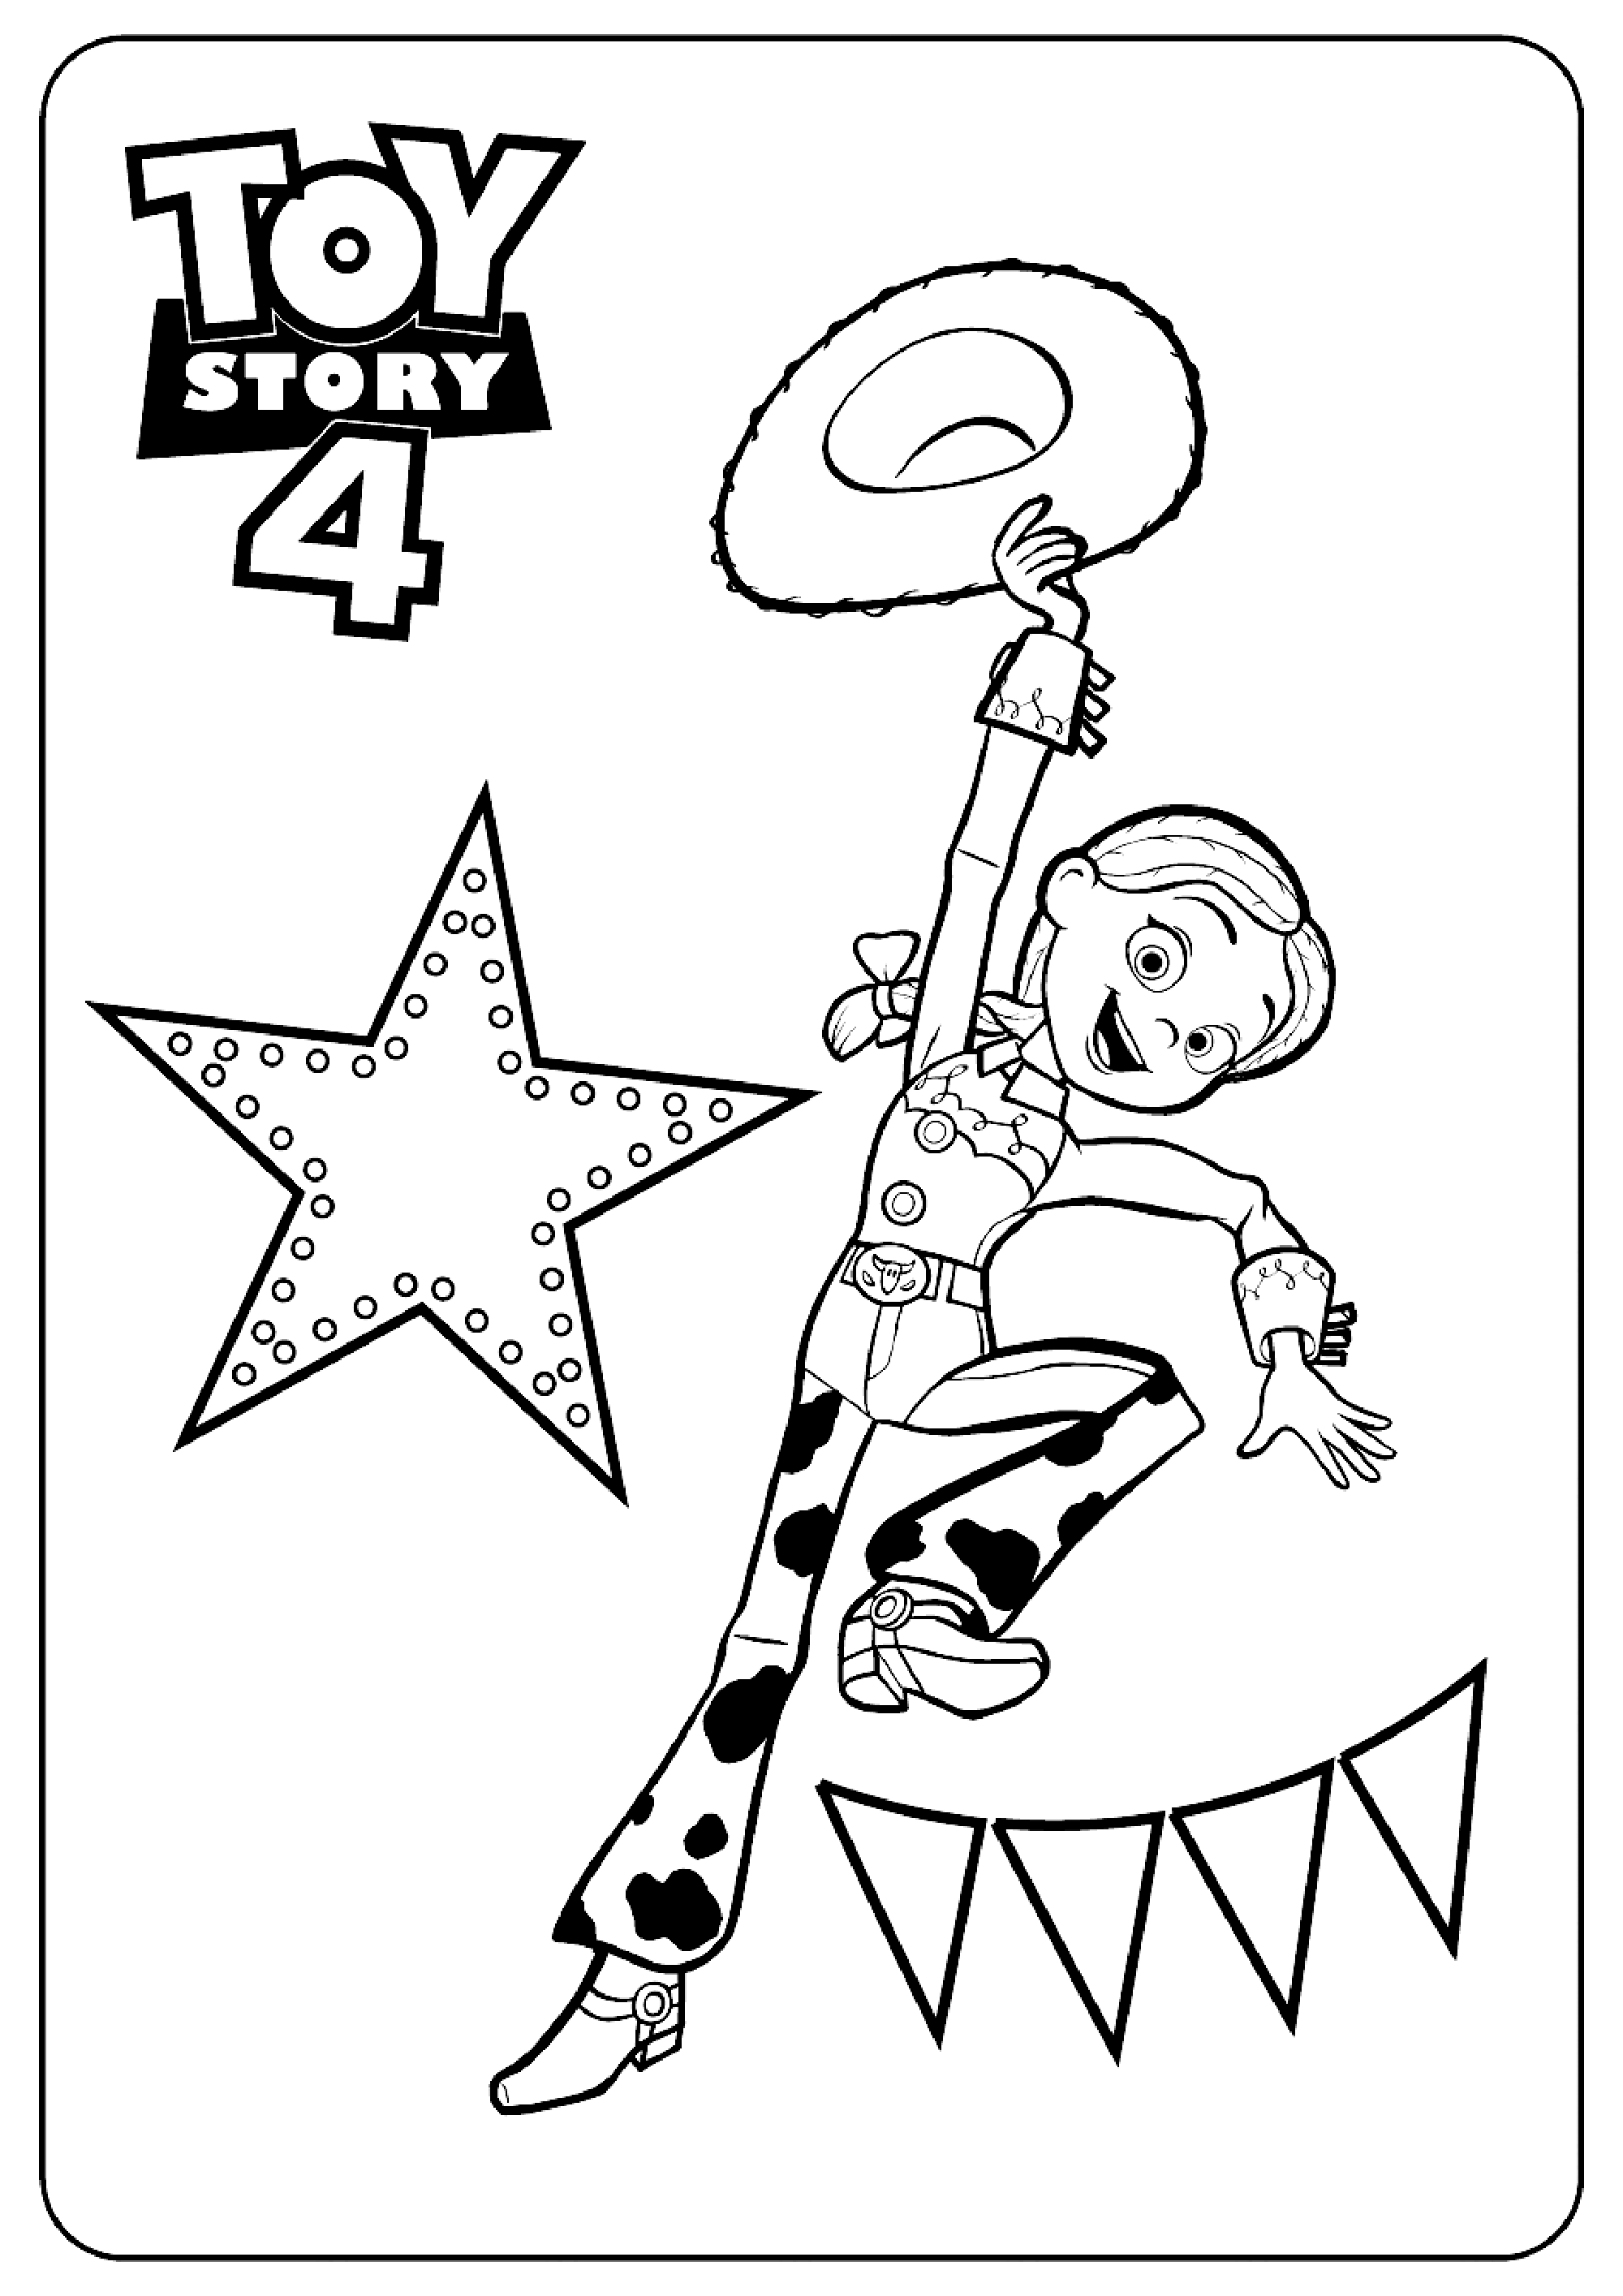 Printable Toy Story 4 coloring page to print and color : Wendy